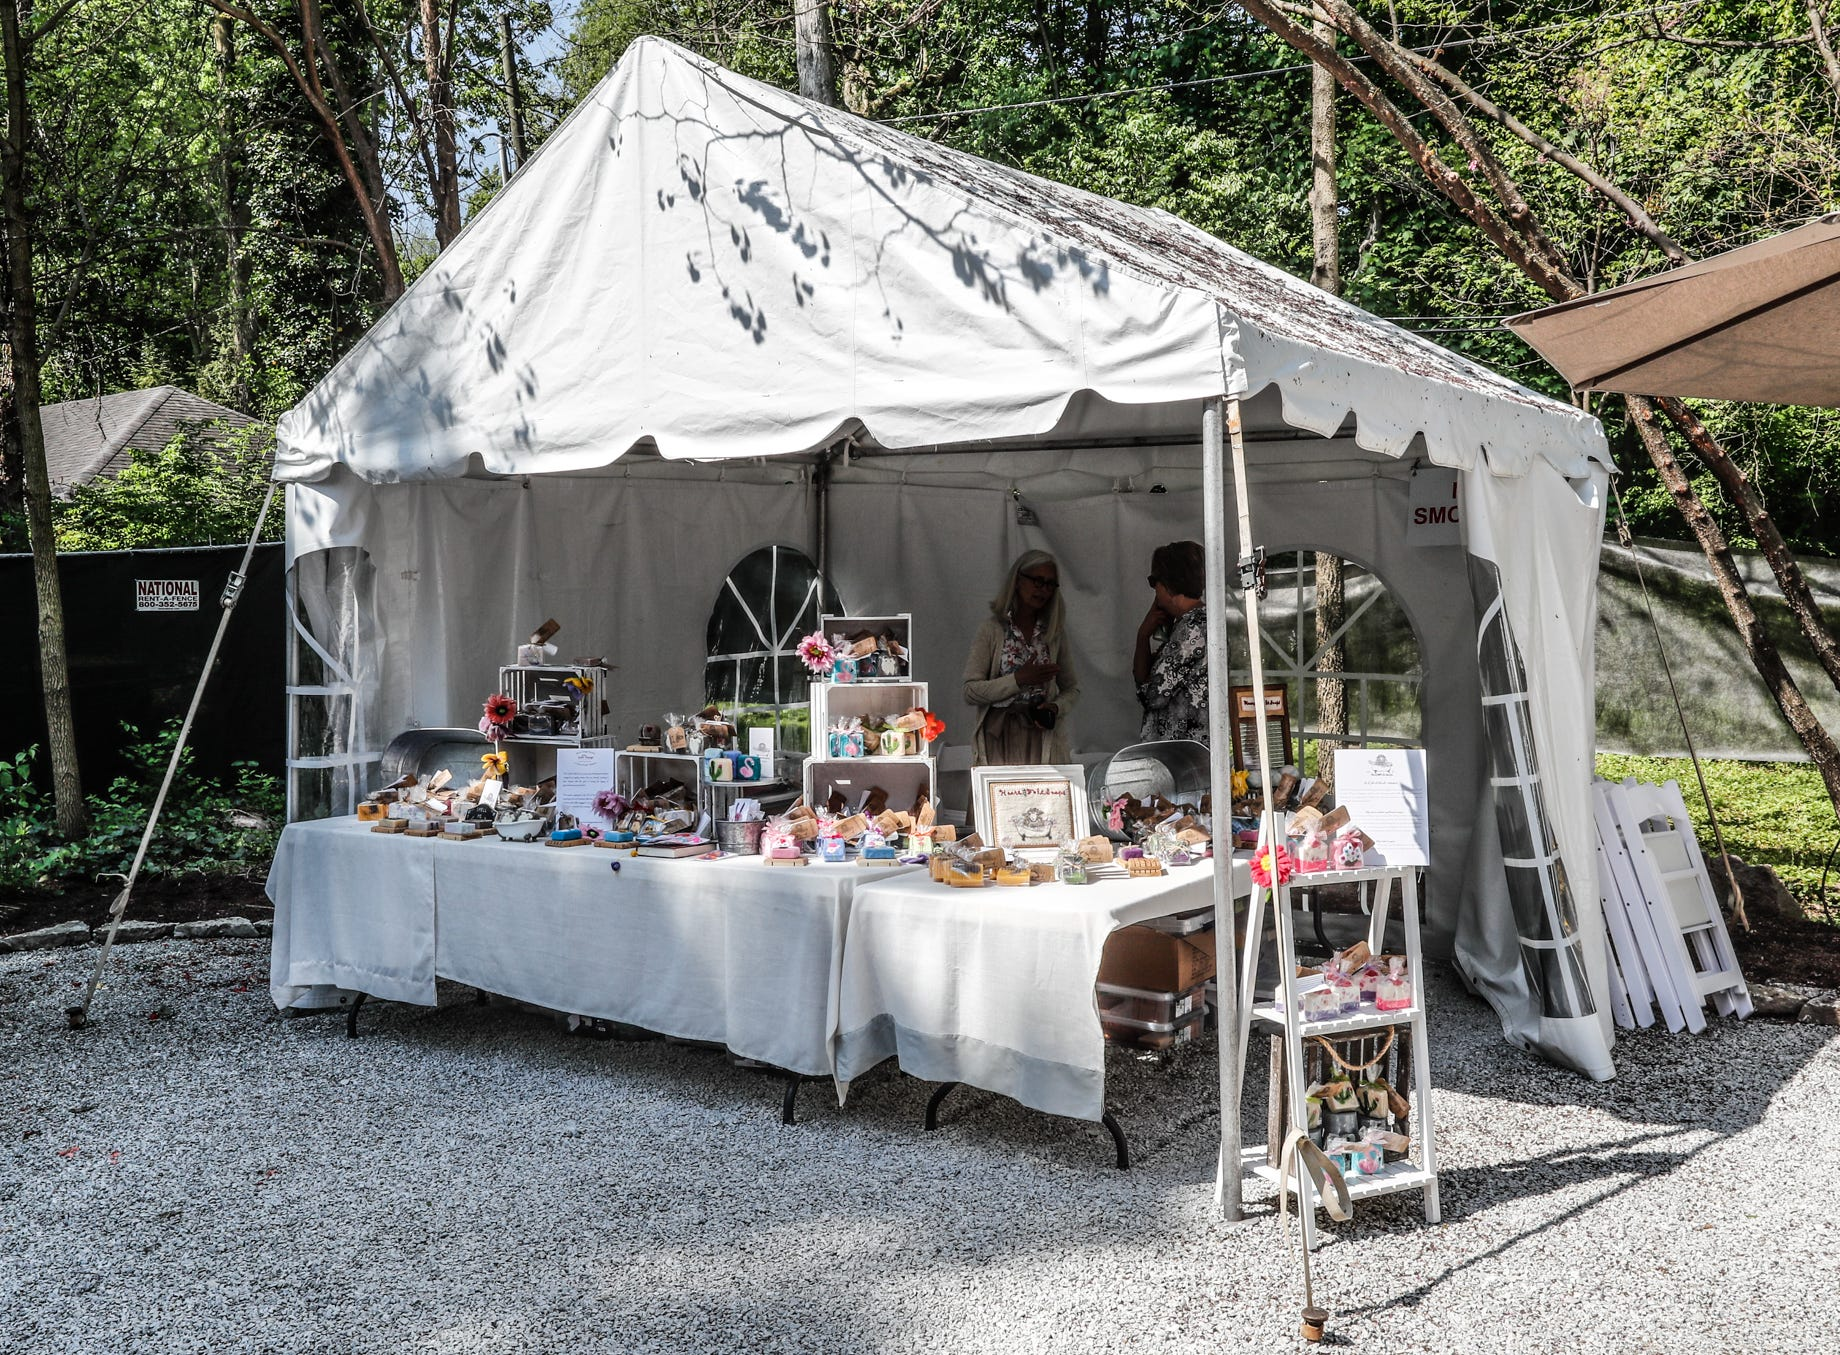 The Twisted Sisters pop up gift shop is located in the rear of The 58th annual St. Margaret's Hospital Guild Decorators' Show House and Gardens, located at 4160 Washington Blvd., Indianapolis, on Wednesday, May 8, 2019.